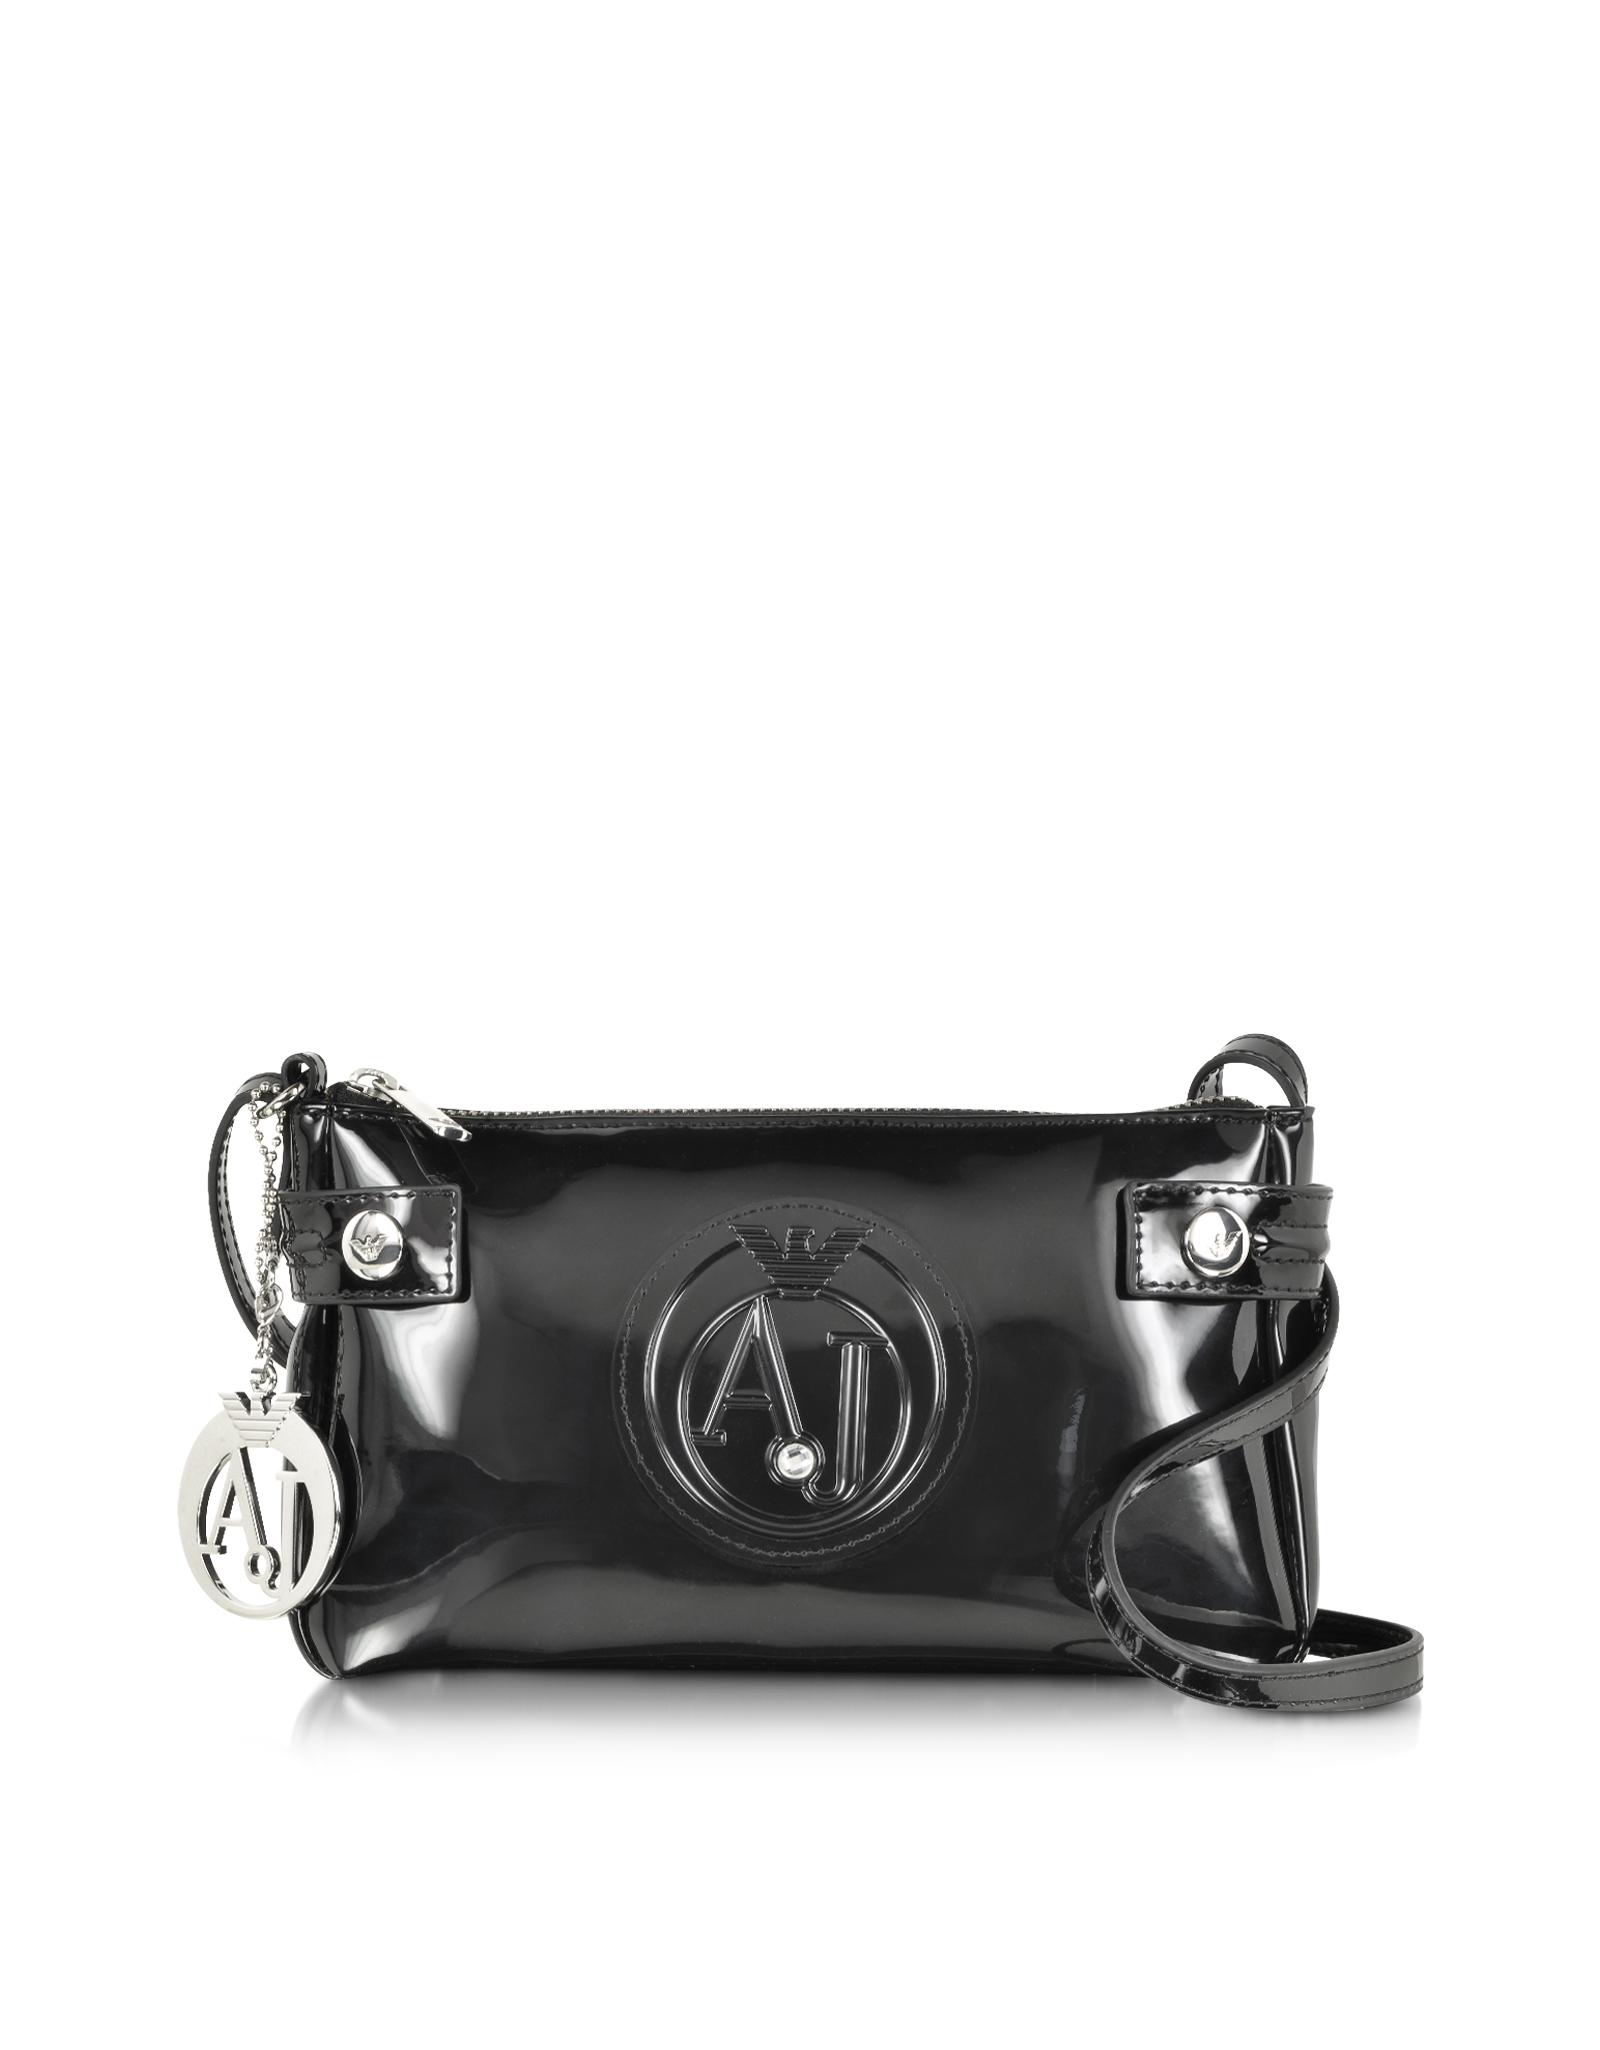 caa7def7d31 Lyst - Armani Jeans Patent Faux Leather Baguette Crossbody in Black